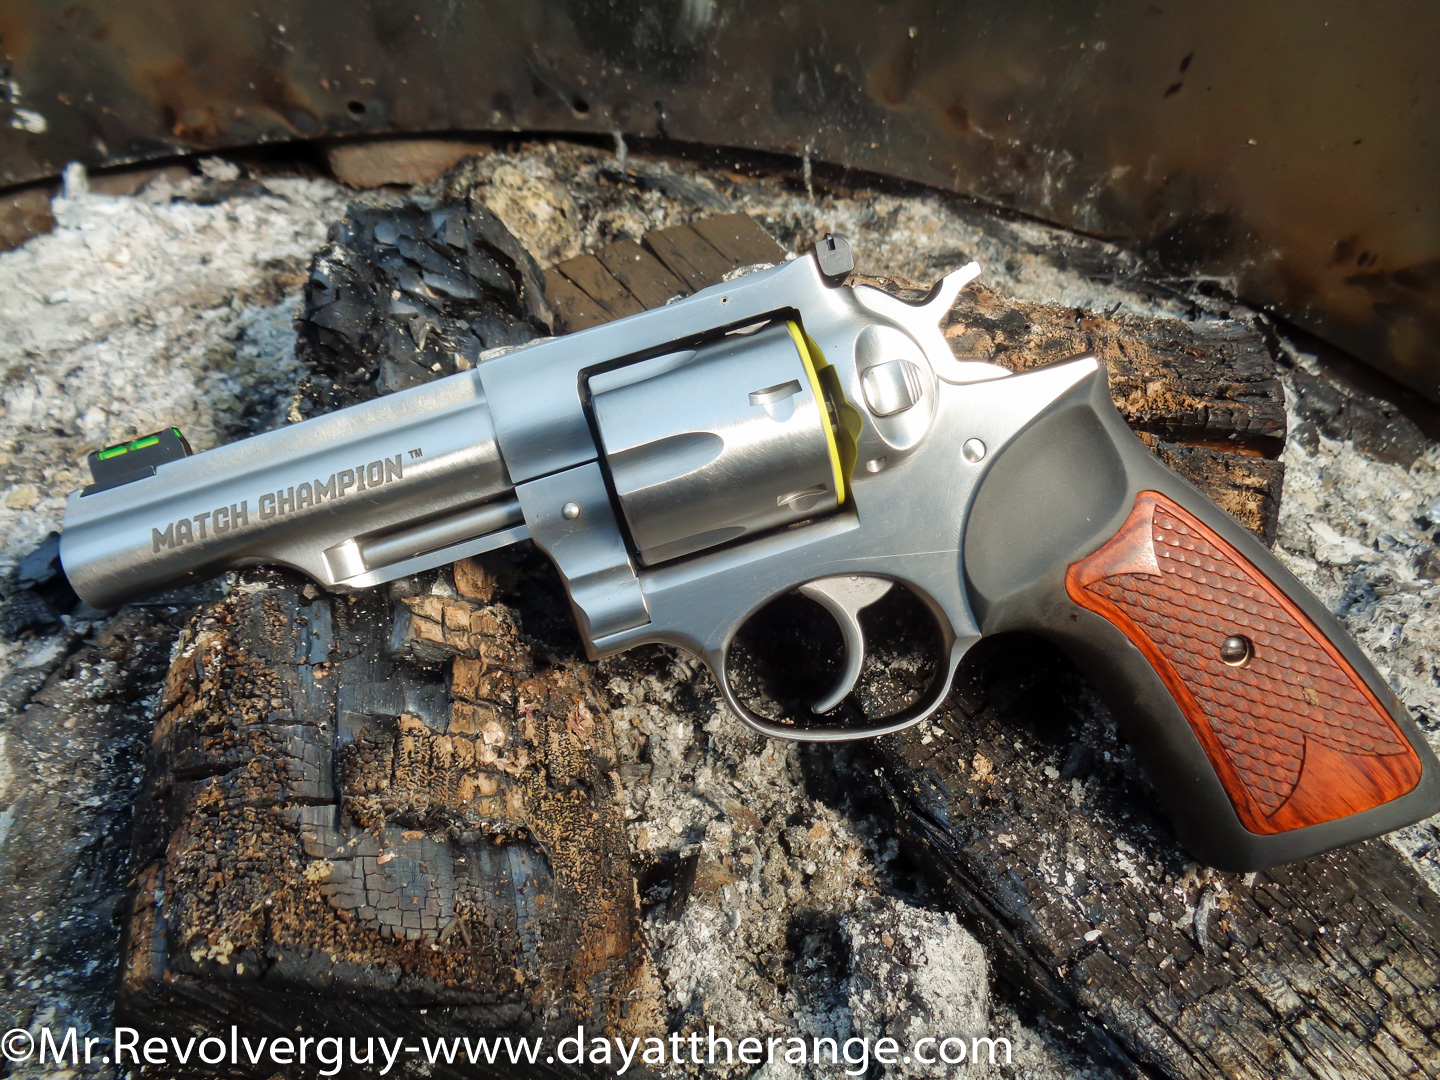 Ruger GP100 Match Champ - Page 2 - The Firing Line Forums